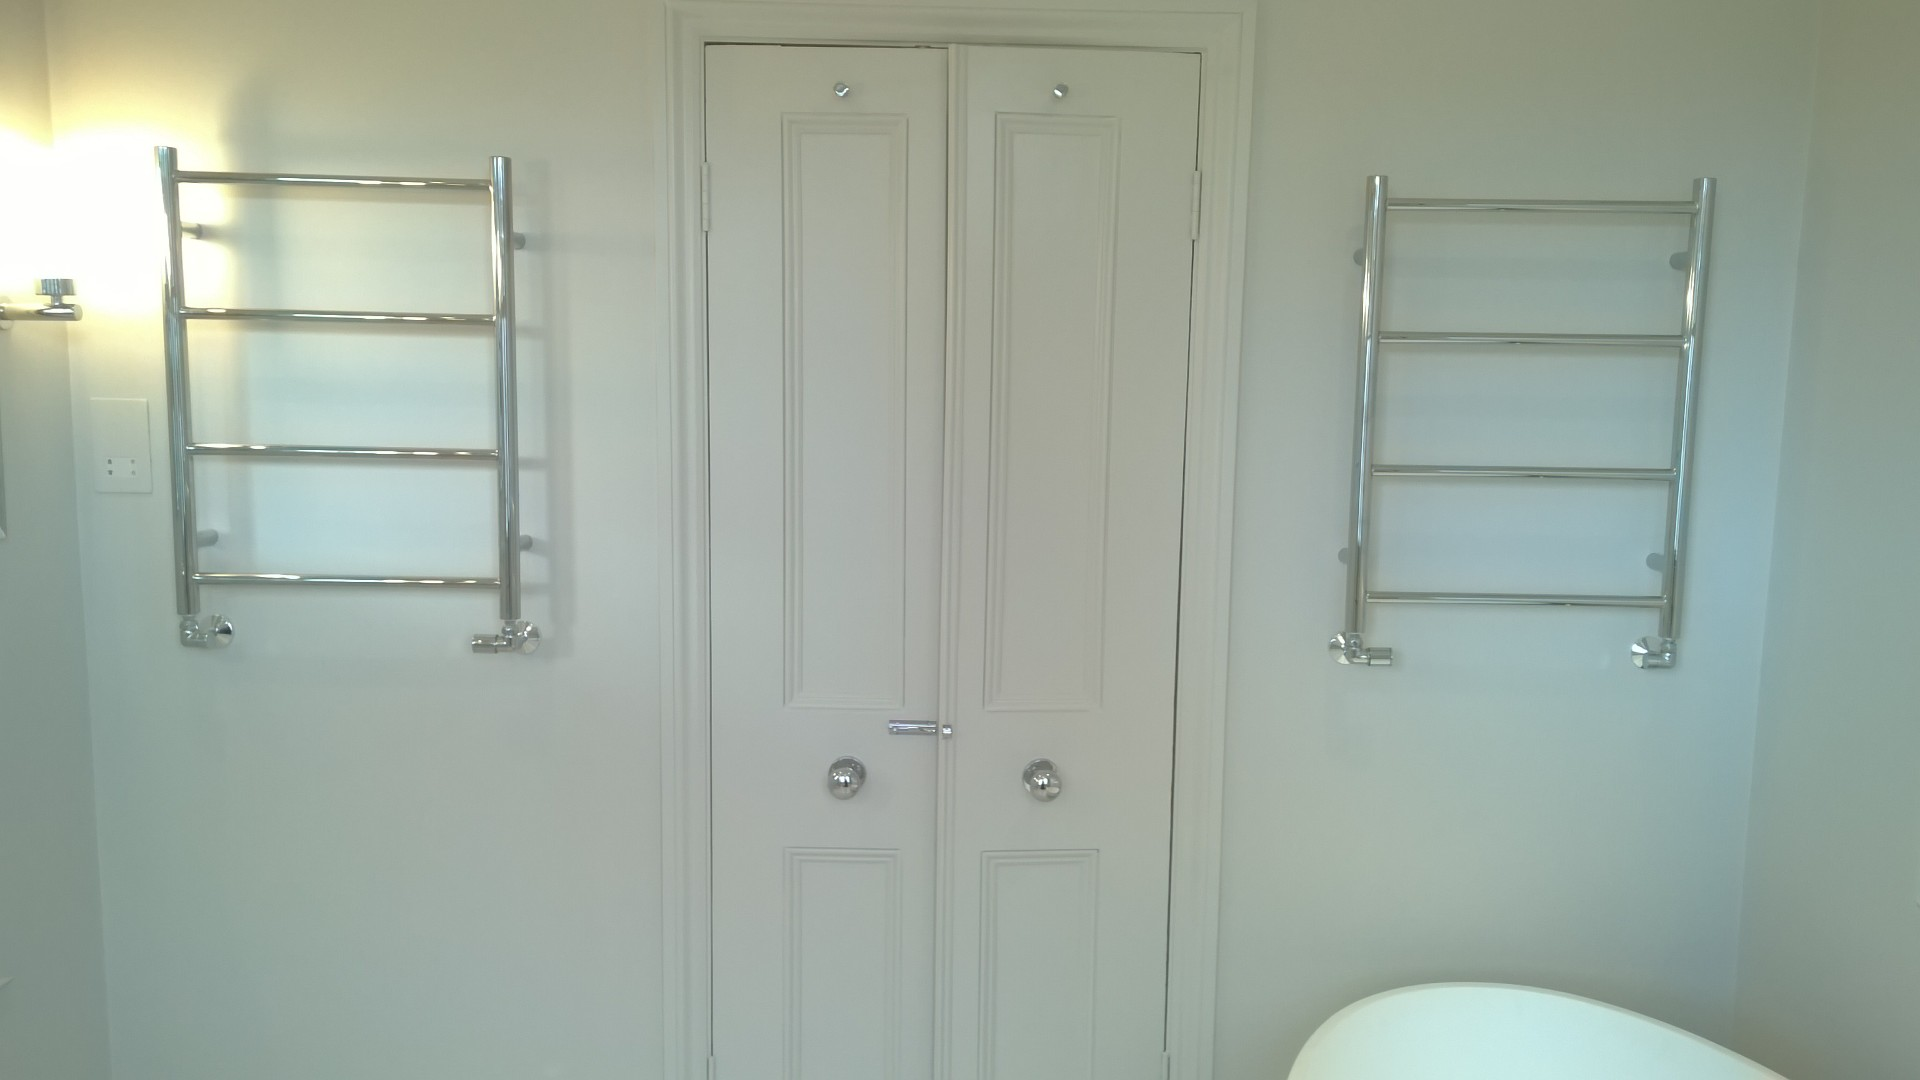 Double doors into a bathroom with heated towel rails